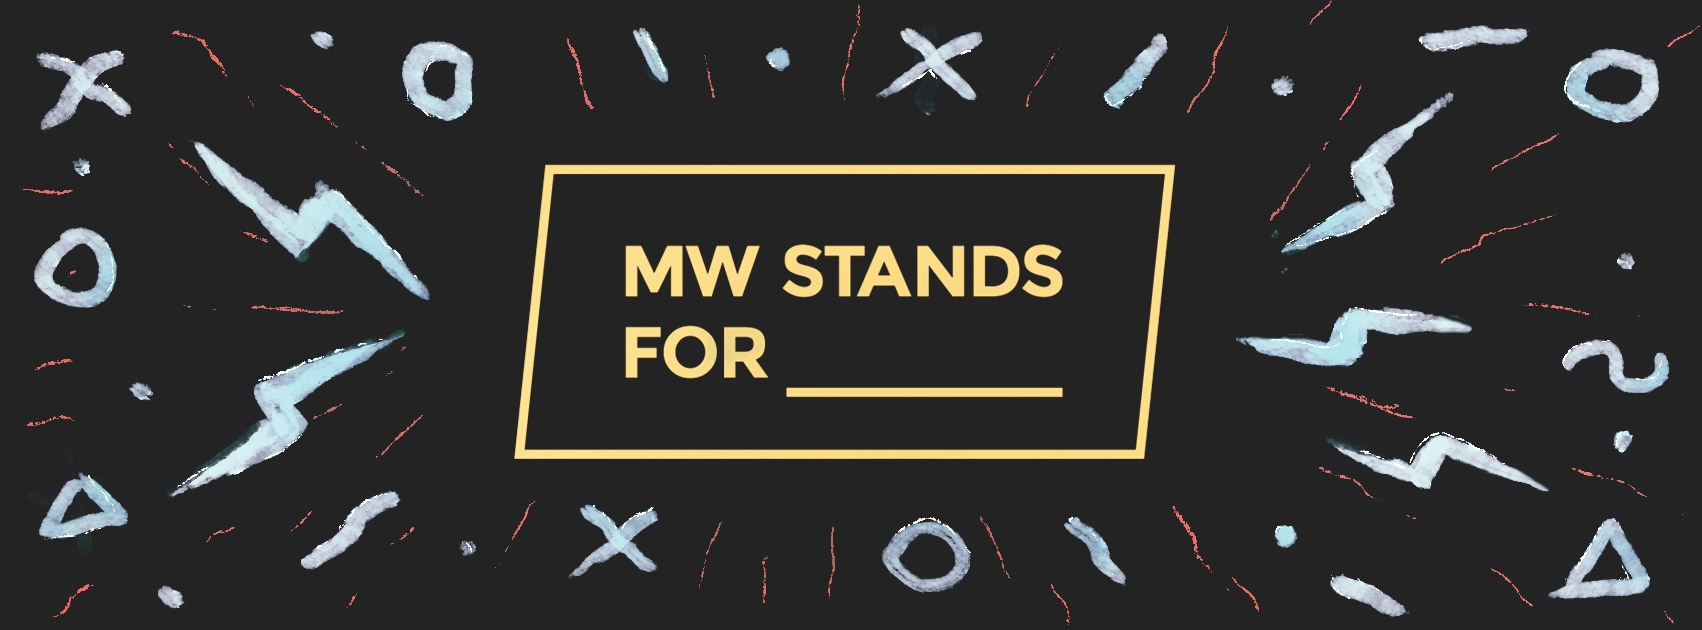 MW Stands For (@mwstandsfor) Cover Image